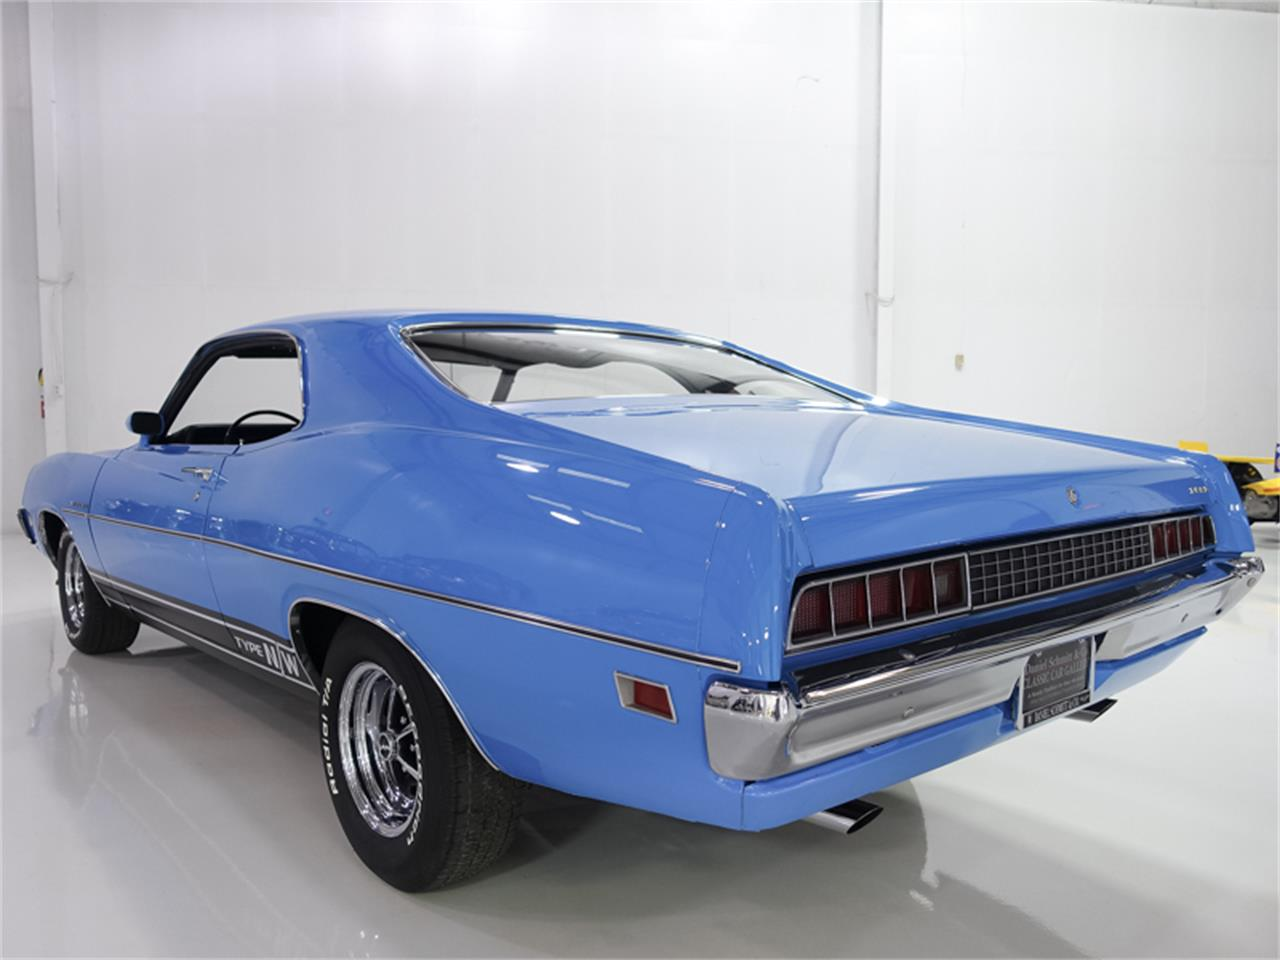 Large Picture of Classic '70 Torino located in St. Ann Missouri Offered by Daniel Schmitt & Co. - MSON